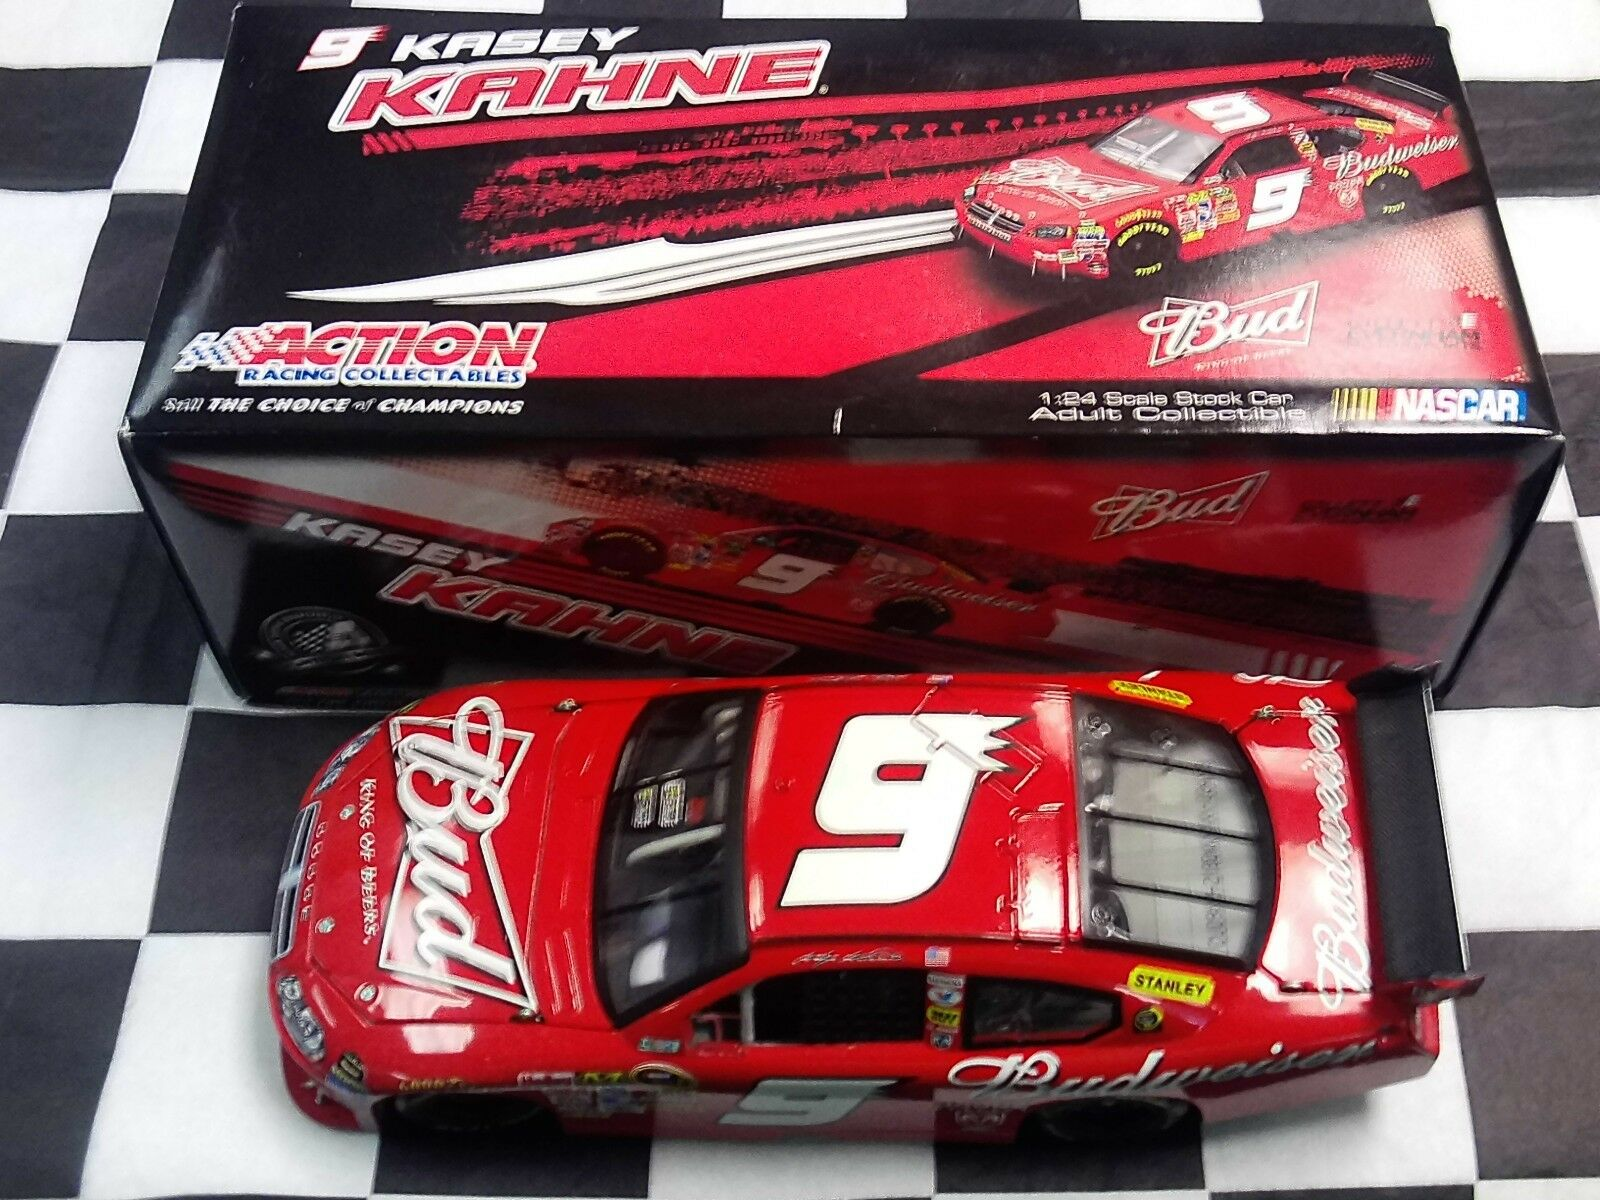 Kasey Kahne  9 Budweiser 2009 Chargeur 1 24 scale NASCAR Action CX 99821 bdkk NEW IN BOX